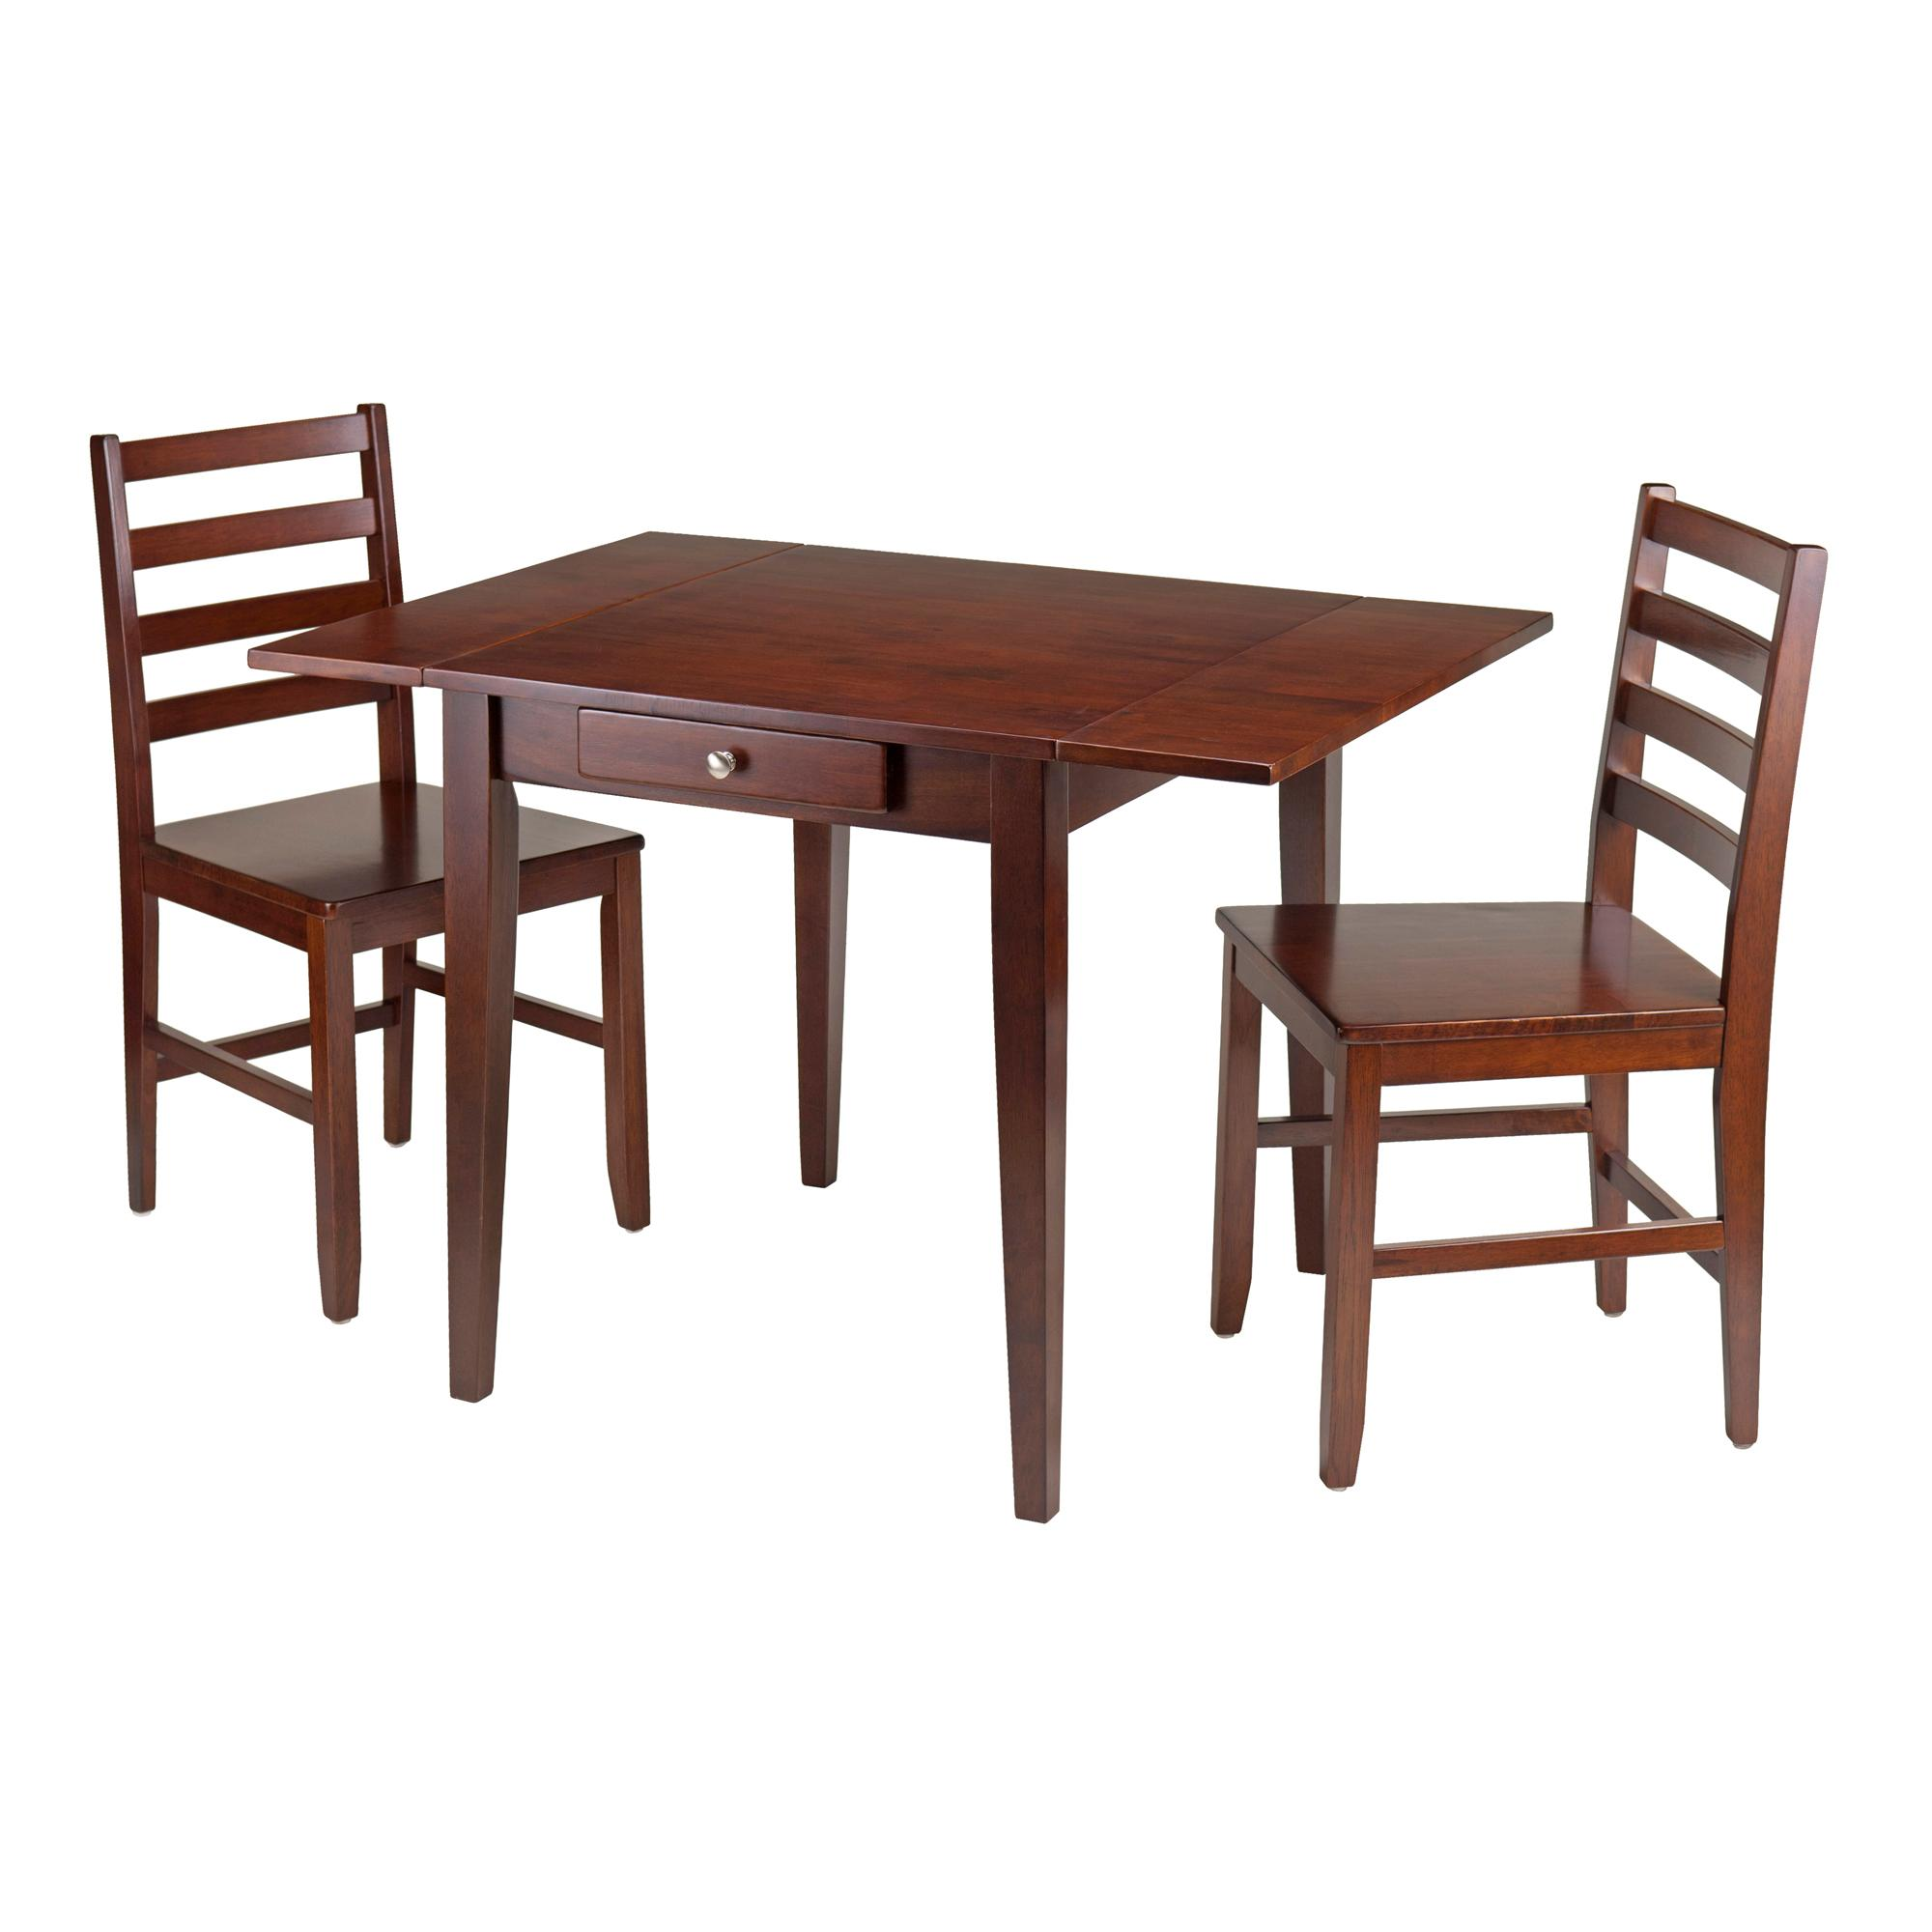 Hamilton 3 Pc Drop Leaf Dining Table With 2 Ladder Back Chairs